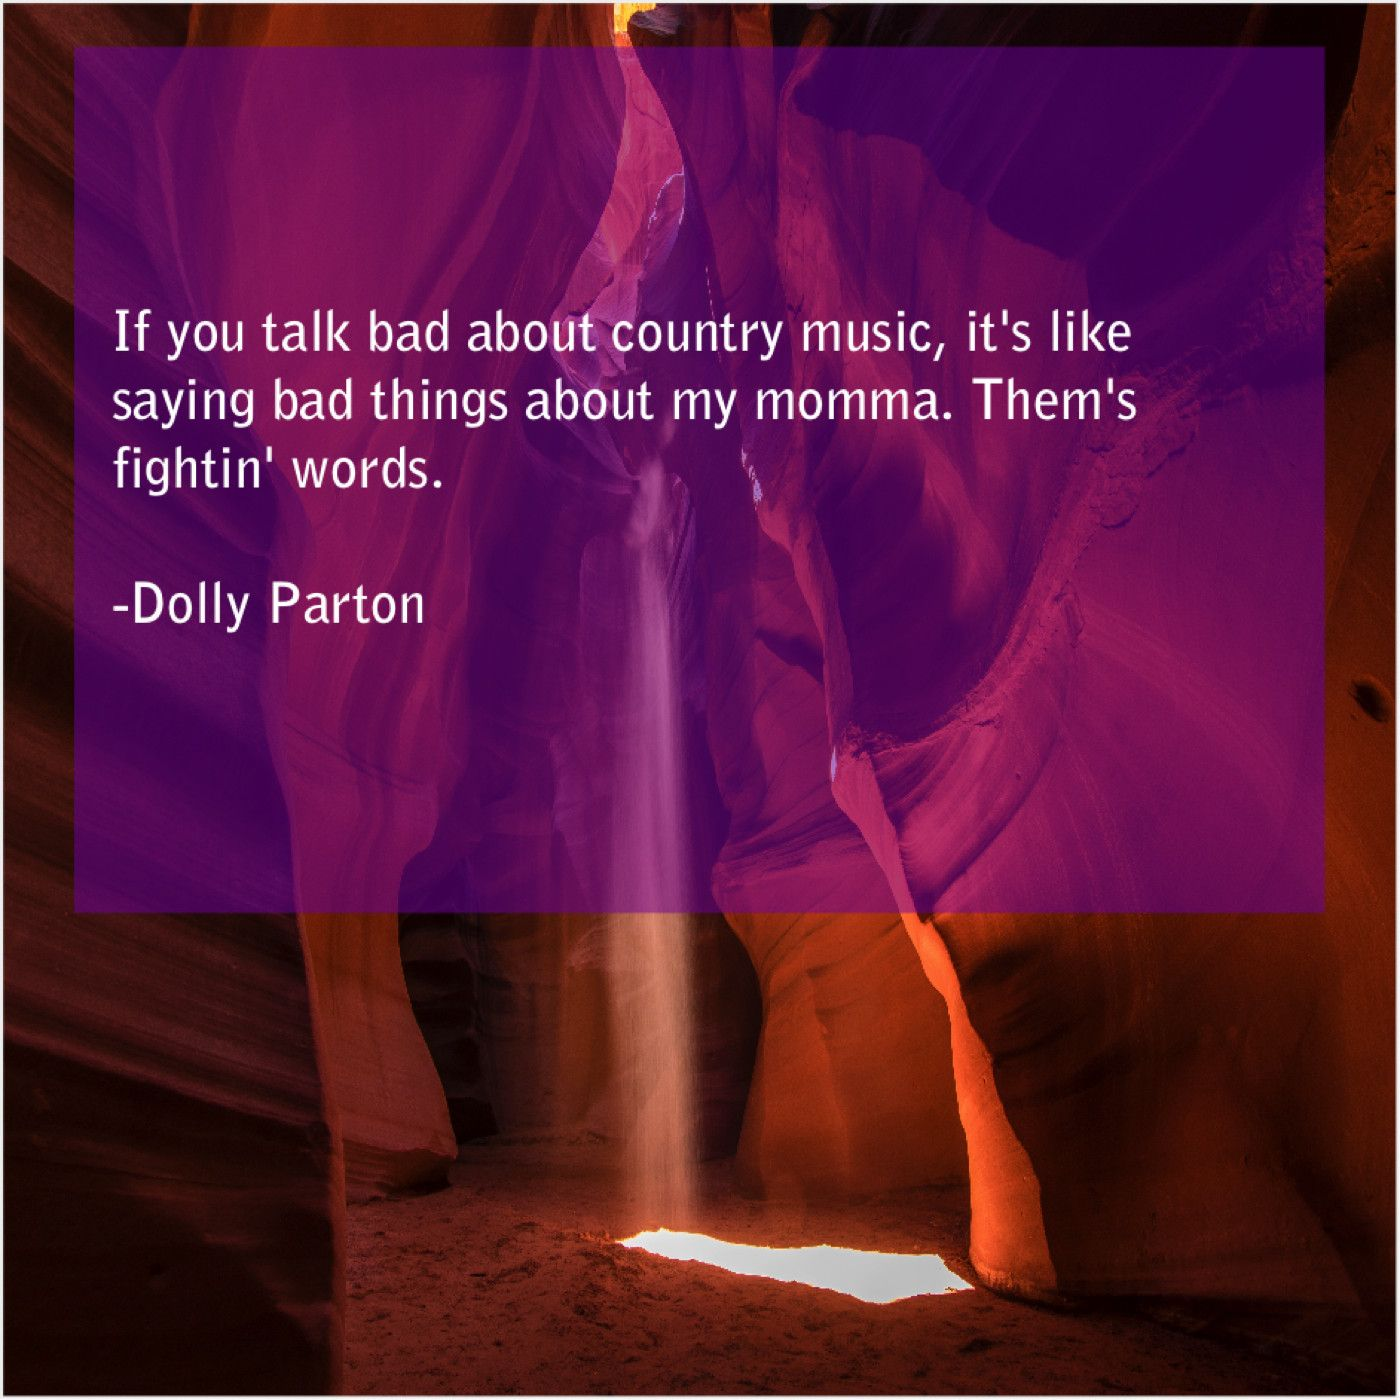 Dolly Parton If You Talk Bad About Ikeda Dolly Parton John Philip Sousa